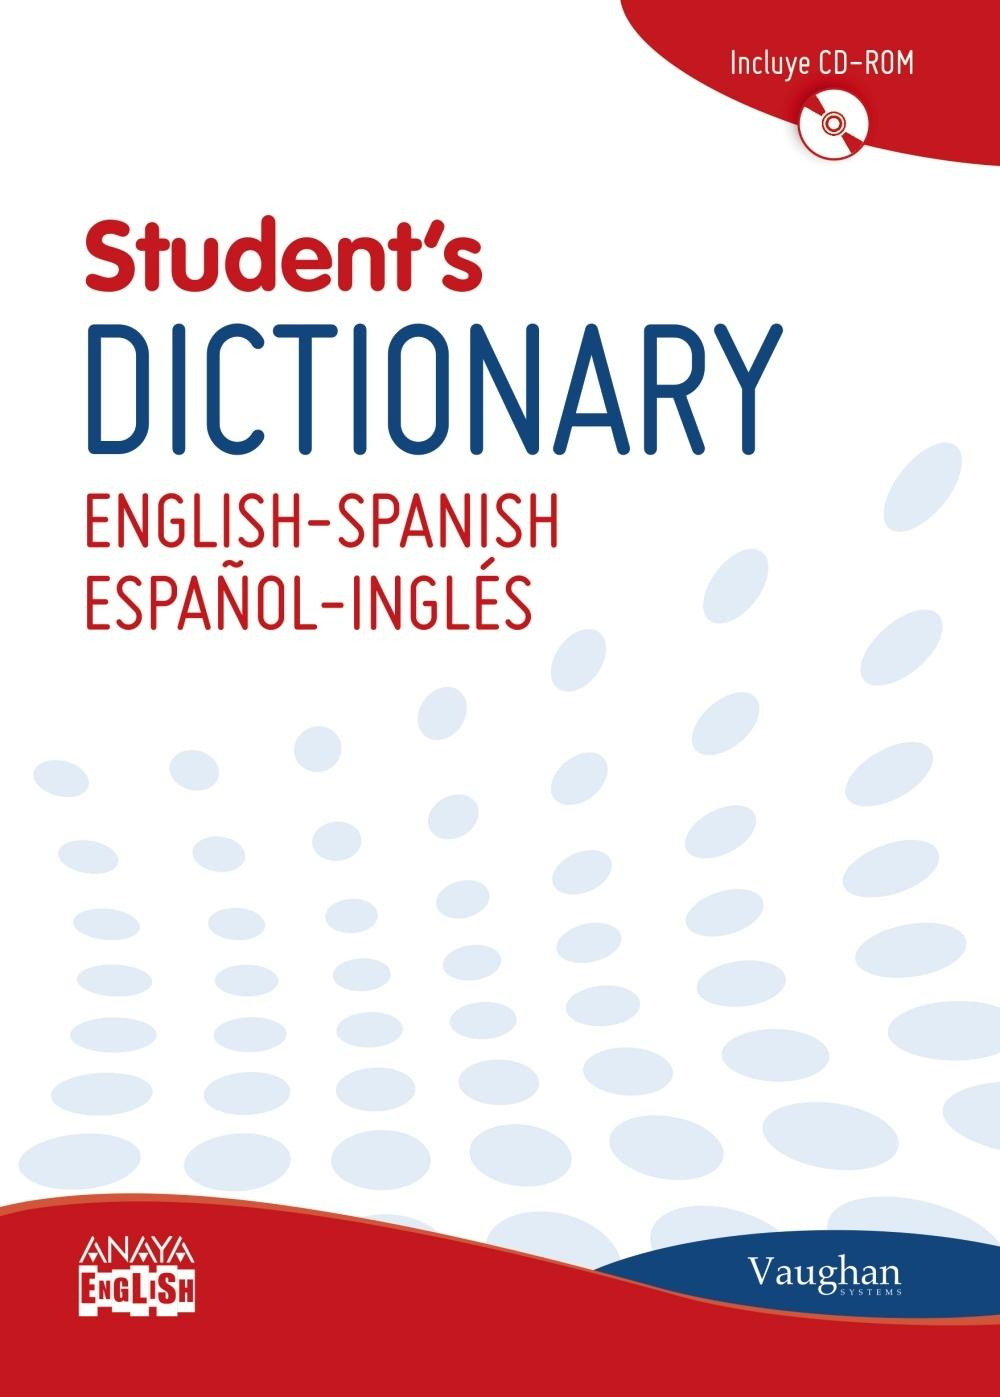 STUDENT'S DICTIONARY ENGLISH-SPANISH/ESPAÑOL-INGLES (+CD)